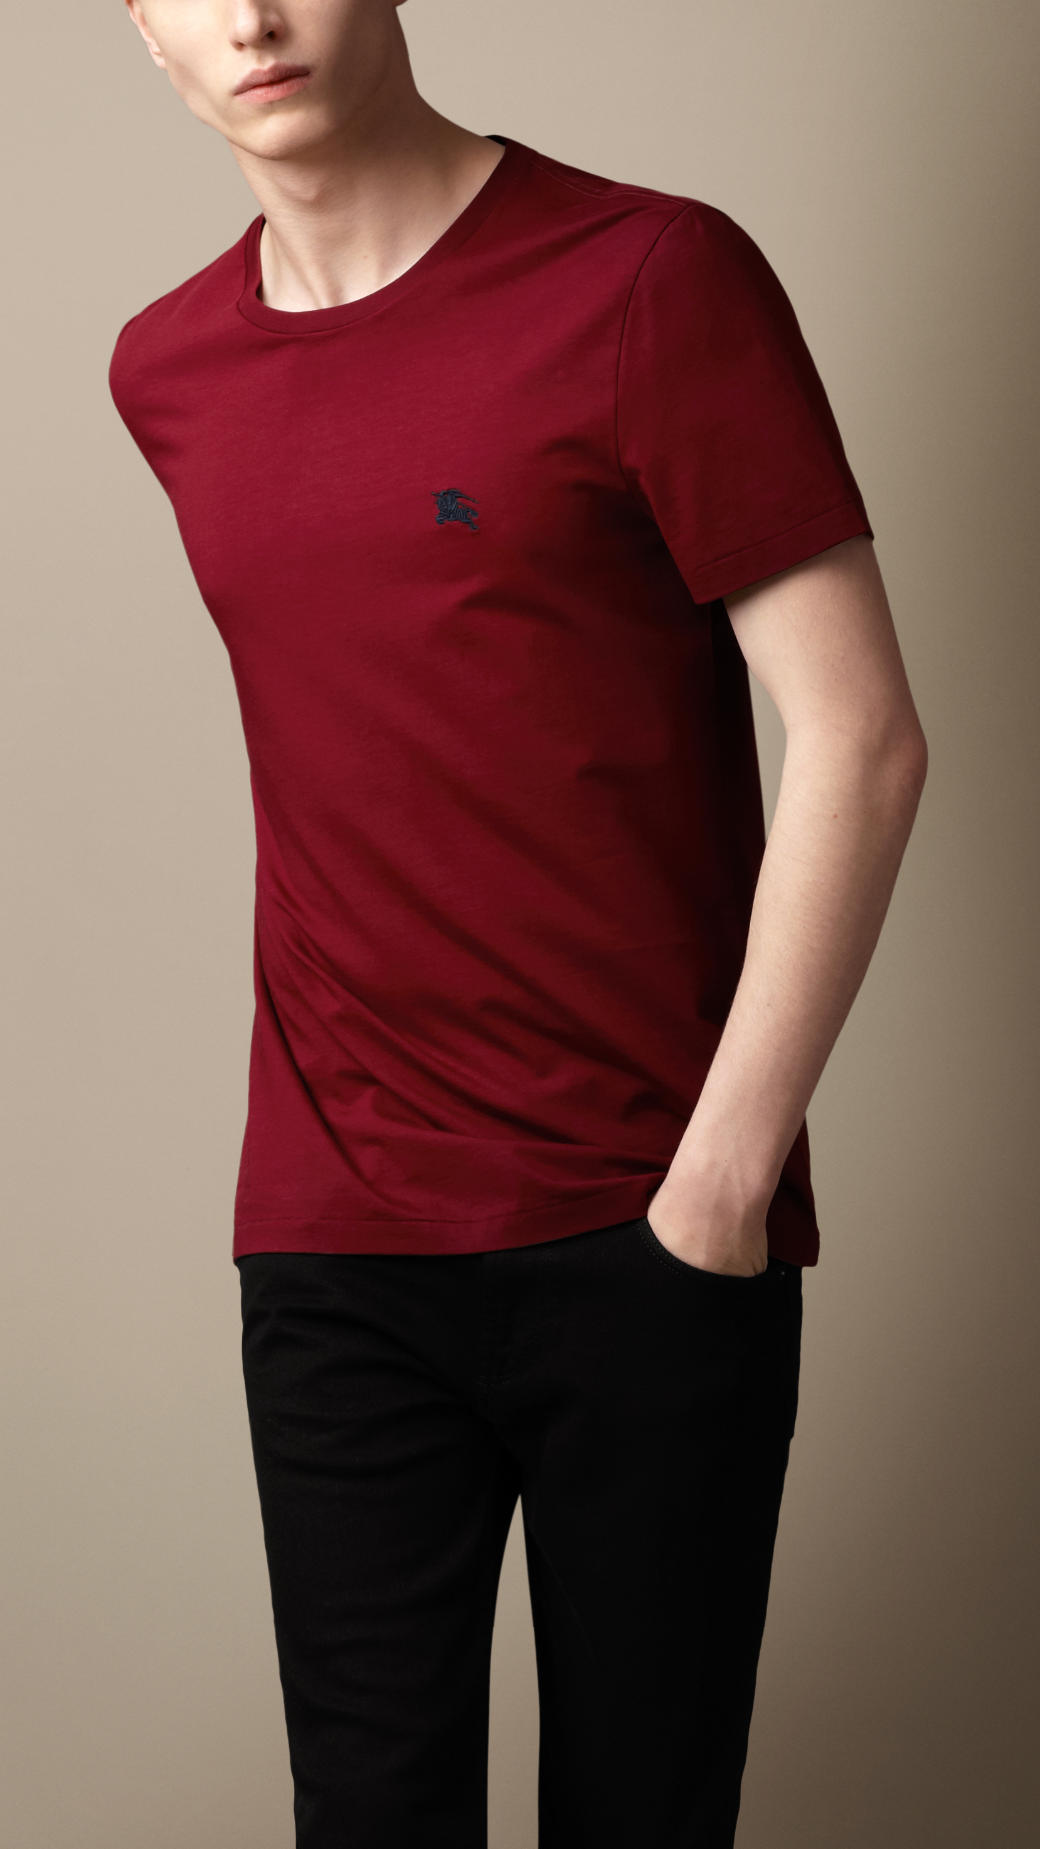 08659c1bd Burberry Liquid Soft Cotton T-Shirt in Red for Men - Lyst